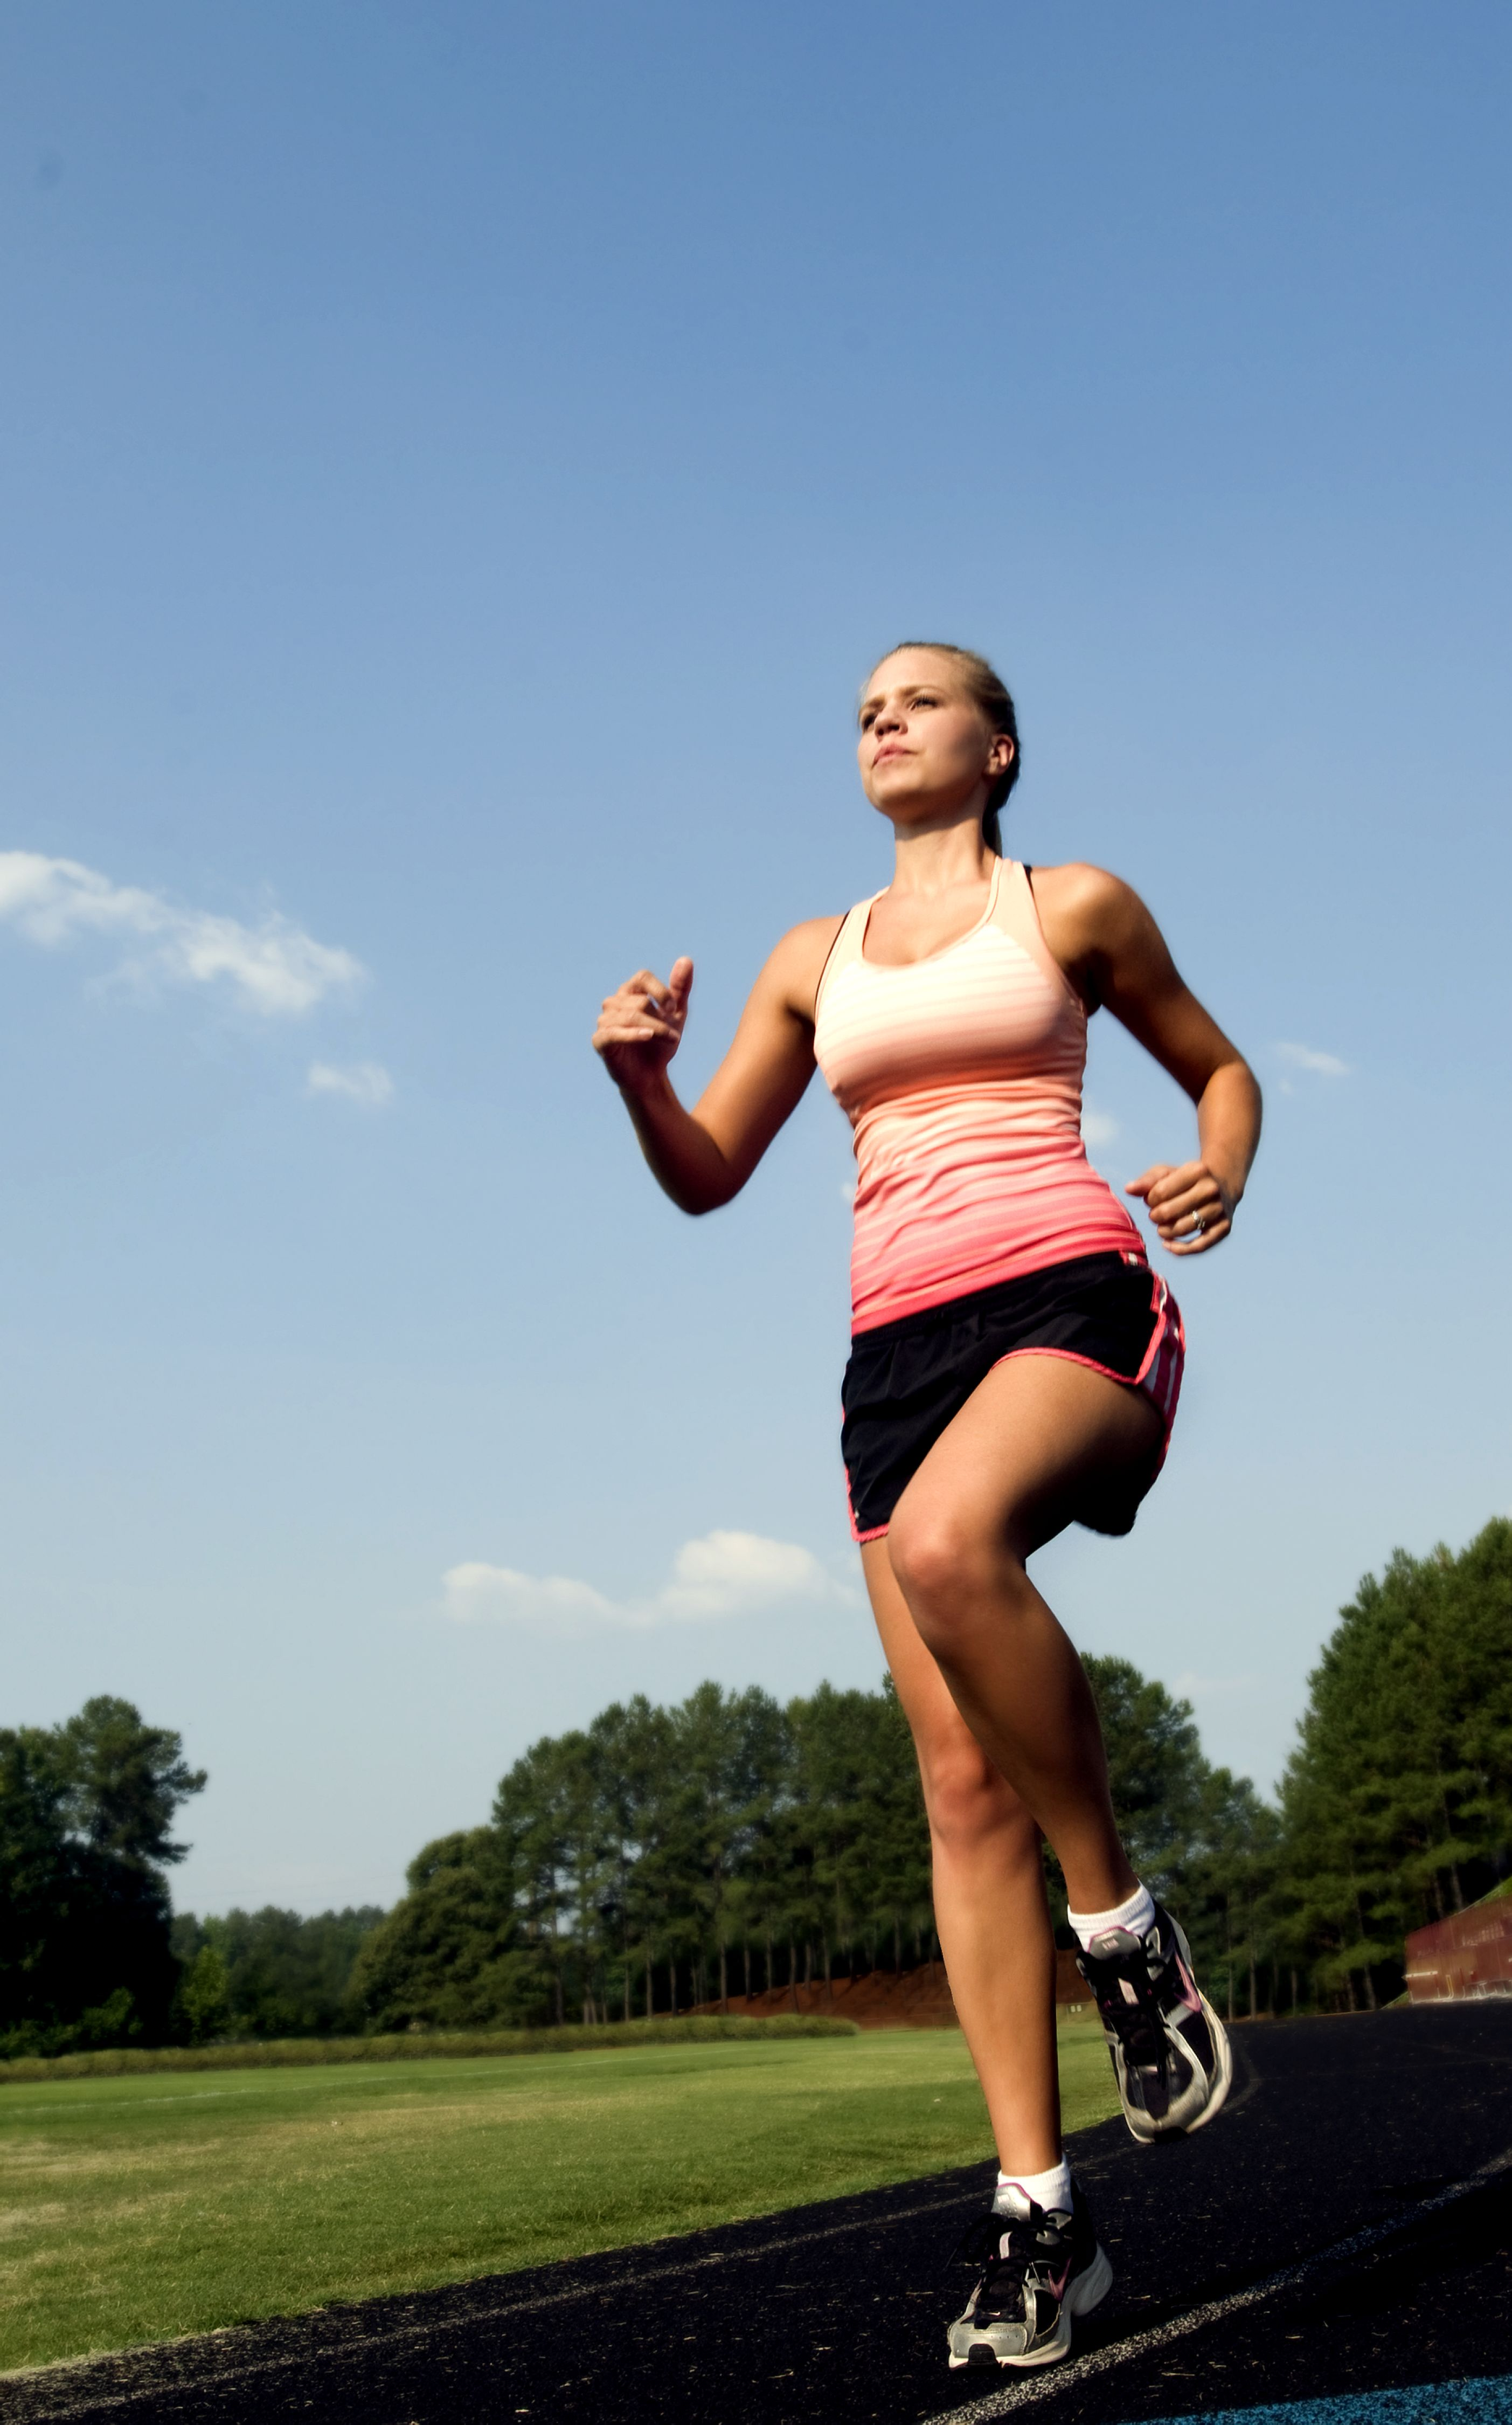 Free photograph; young, woman, jogging, running, track